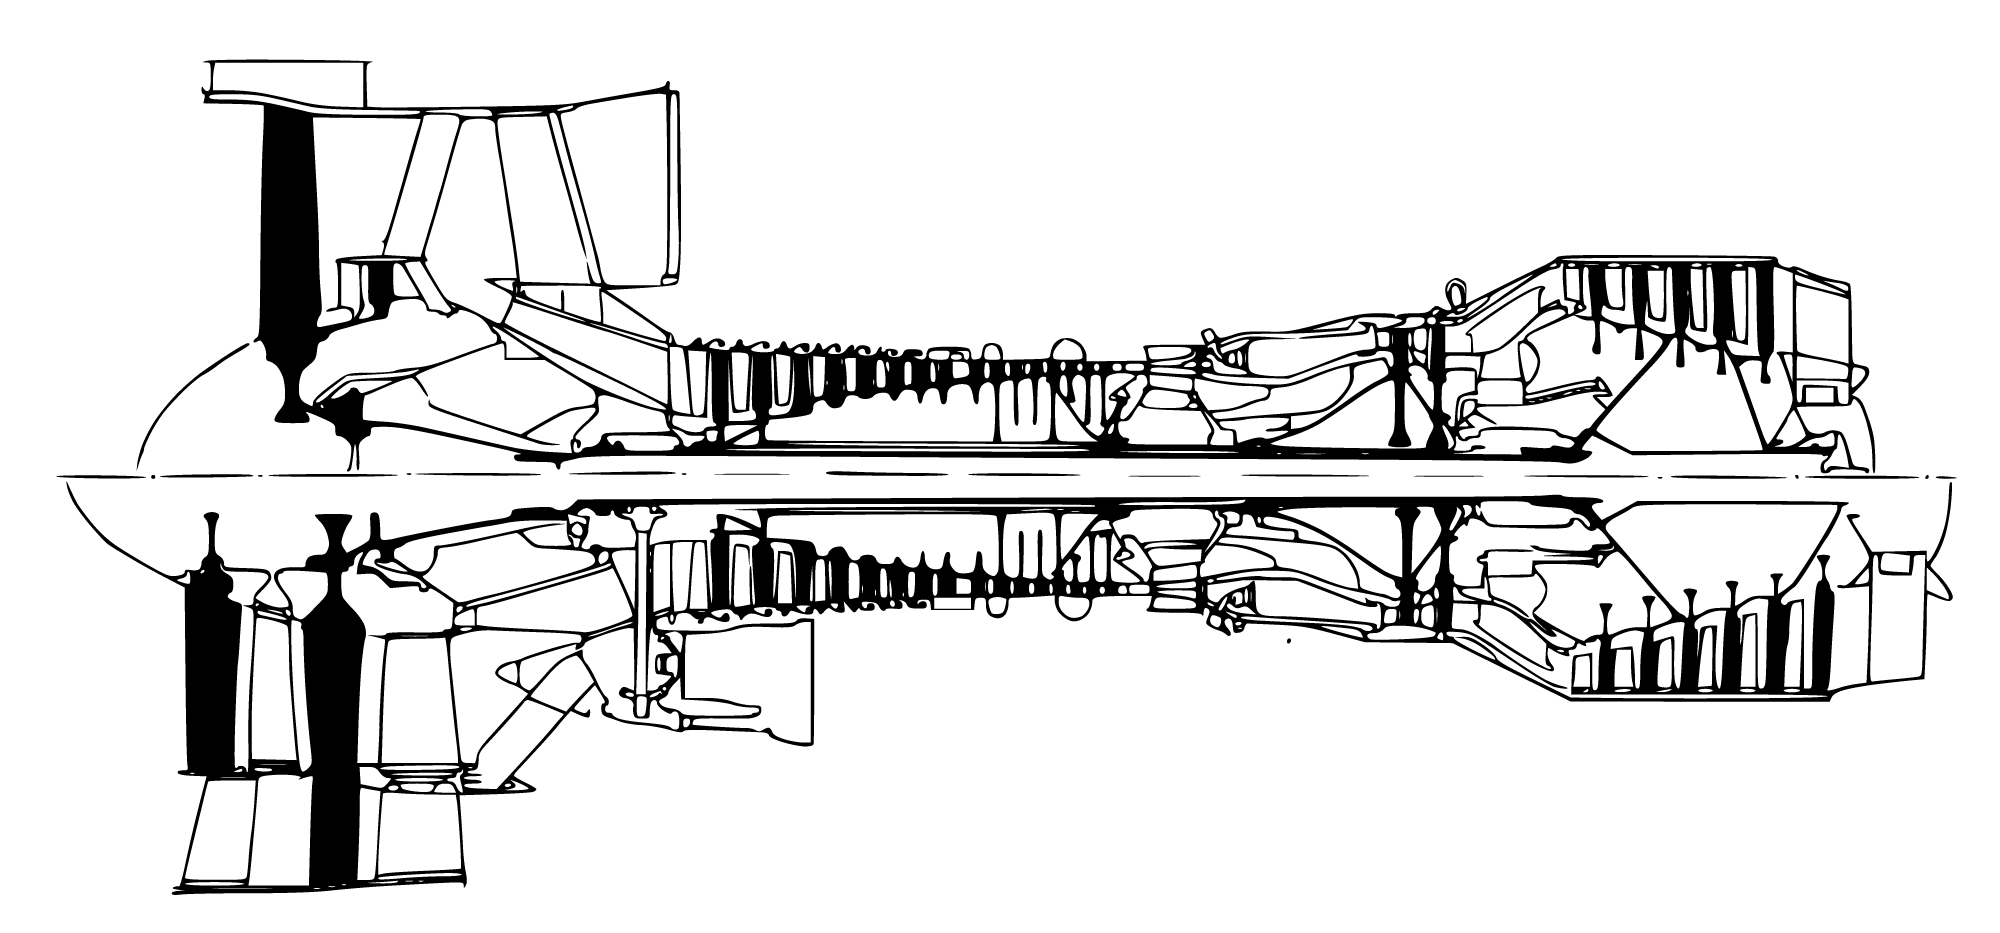 Ge T700 Cross Section